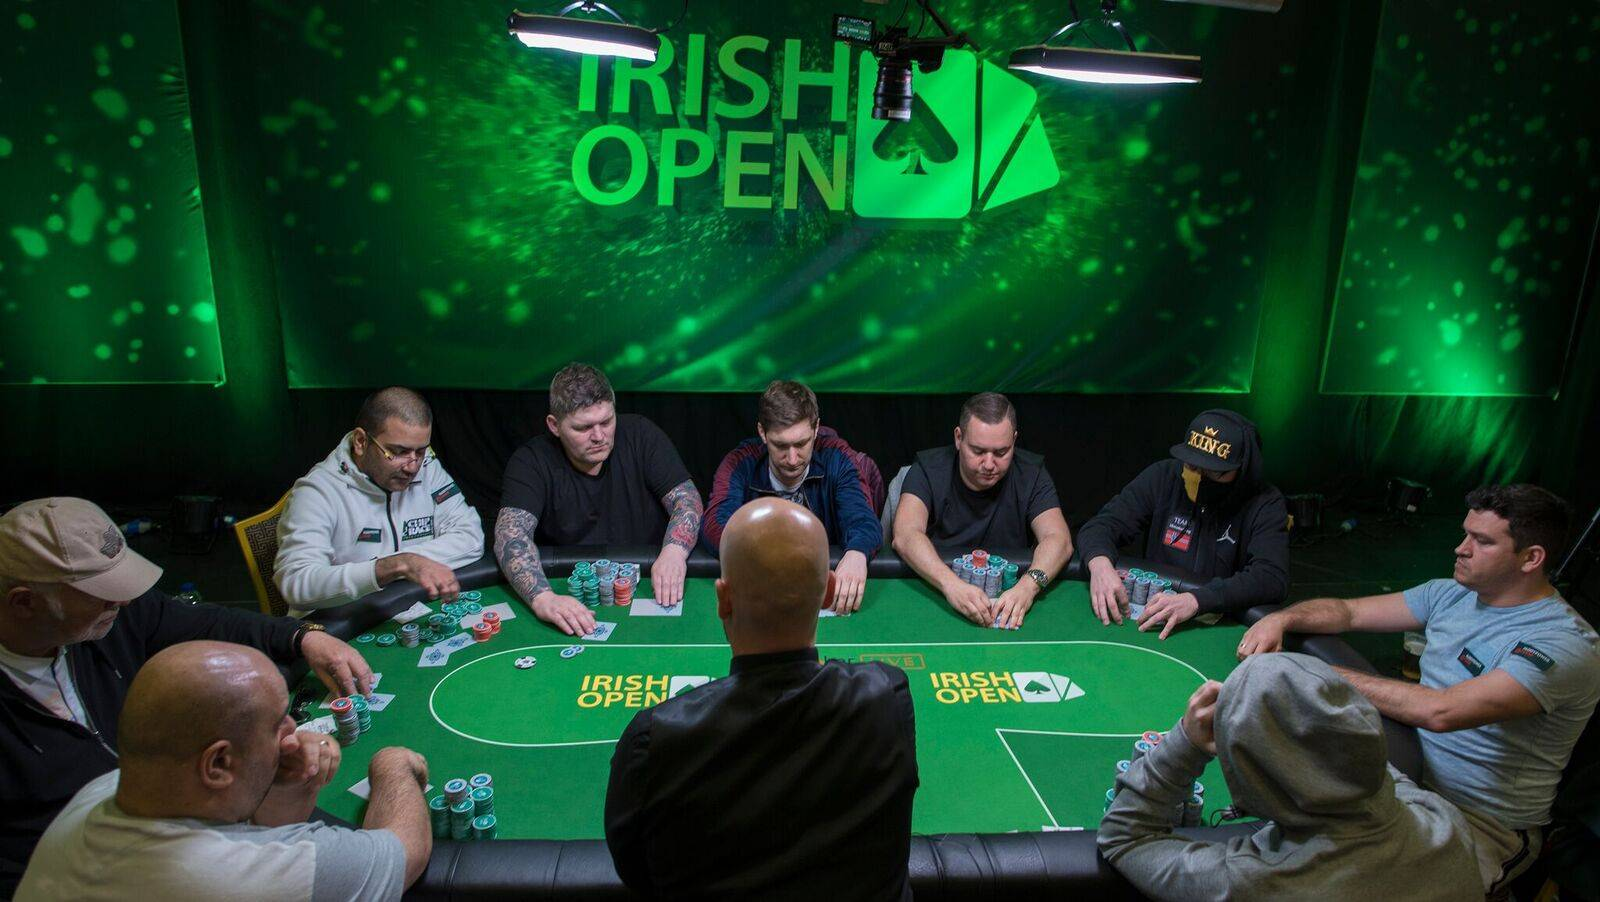 Poker ireland 2018 888 poker mobile app download